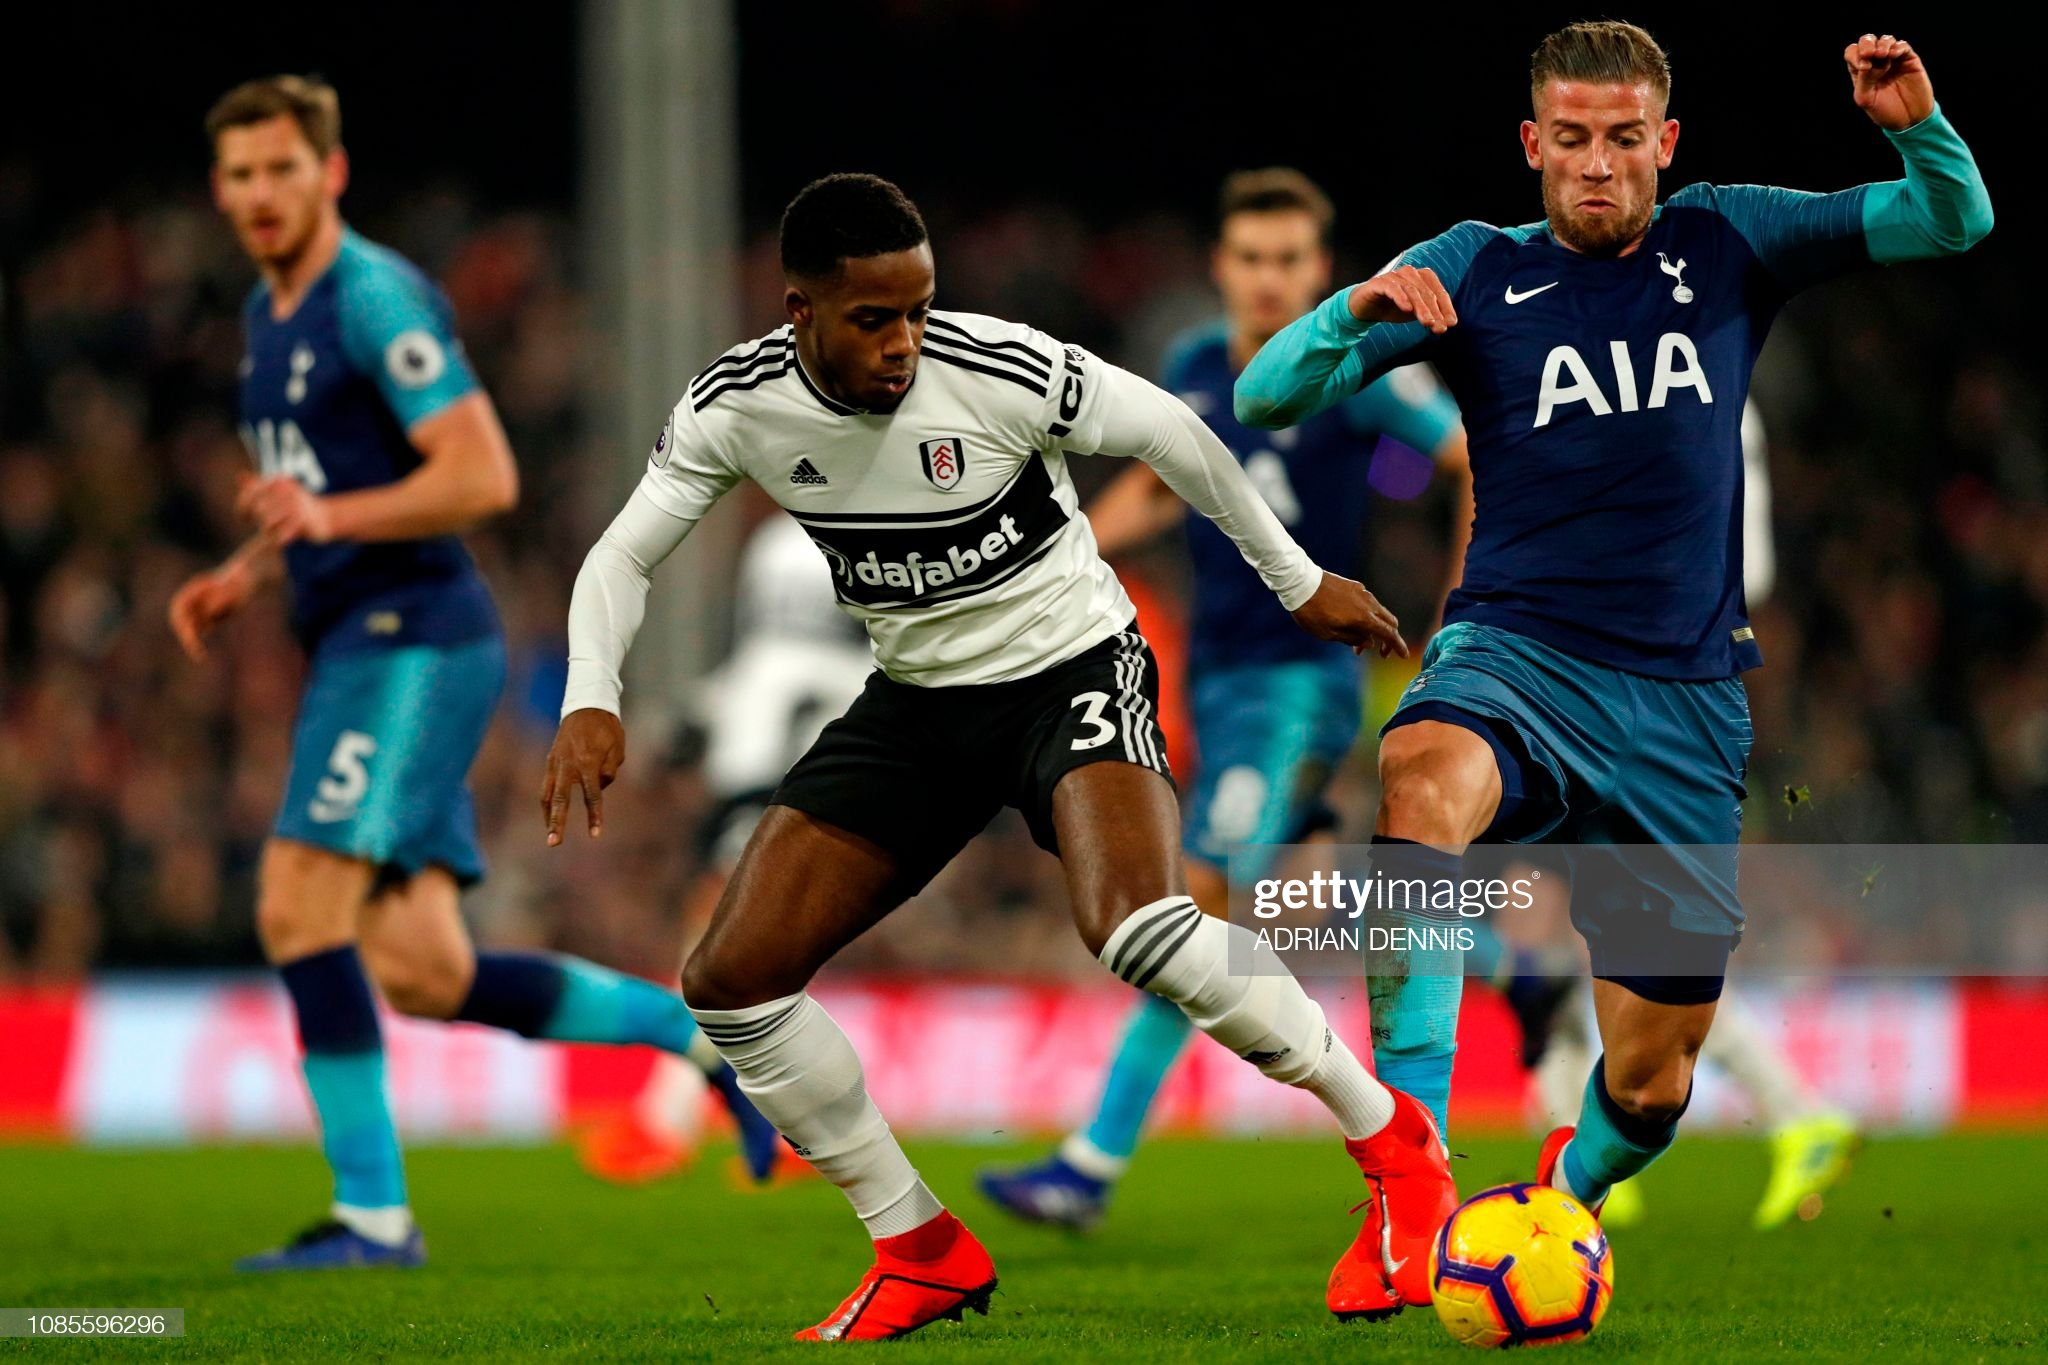 Tottenham vs Fulham preview, prediction and odds